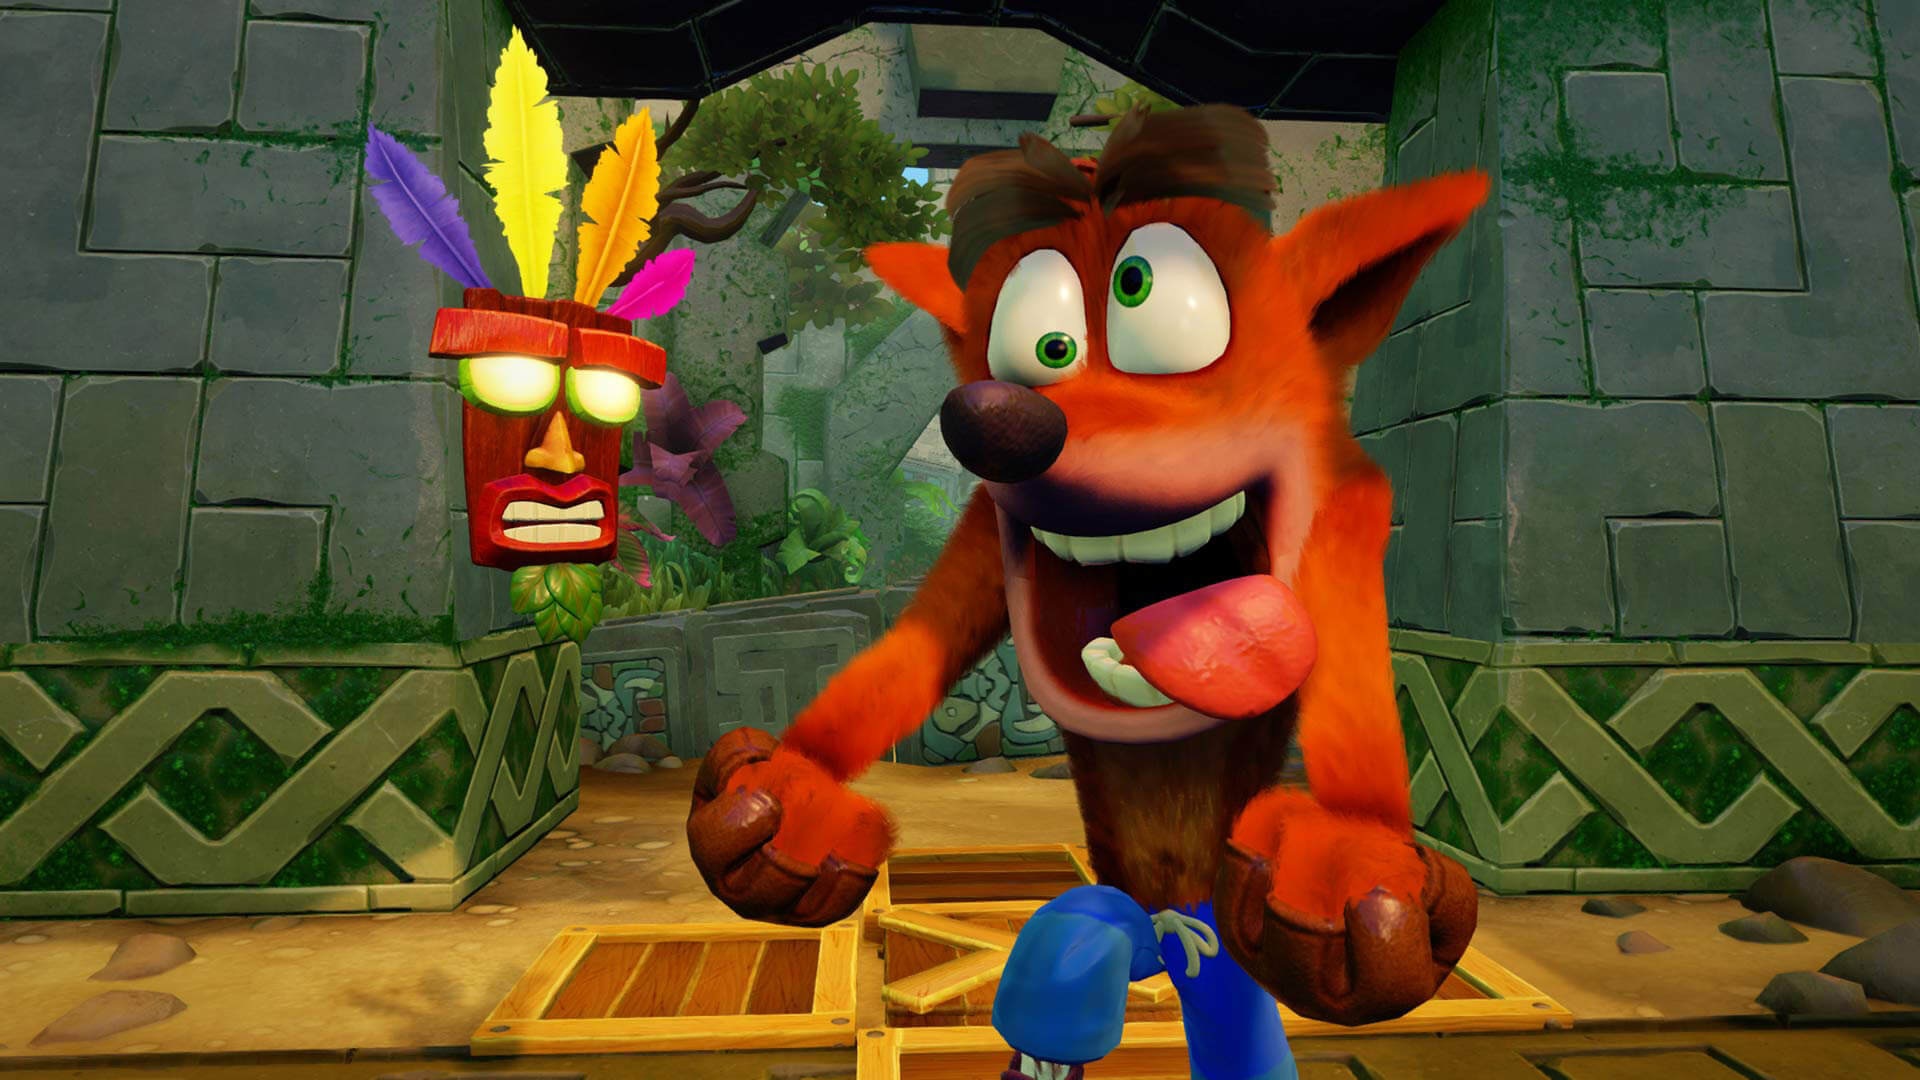 Crash Bandicoot is back.